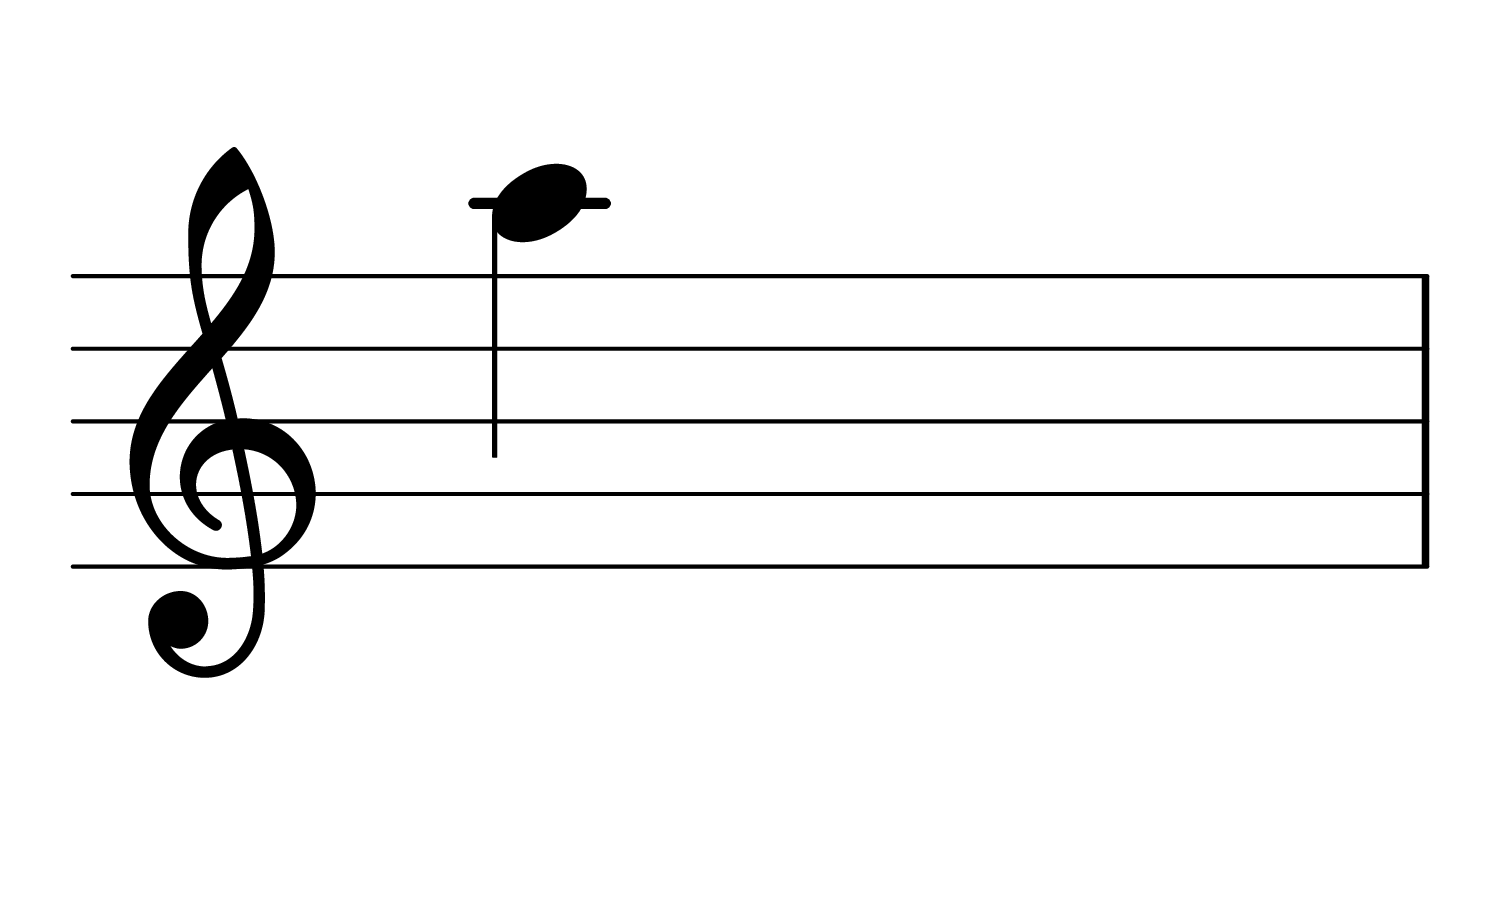 The note A4 on the treble clef.